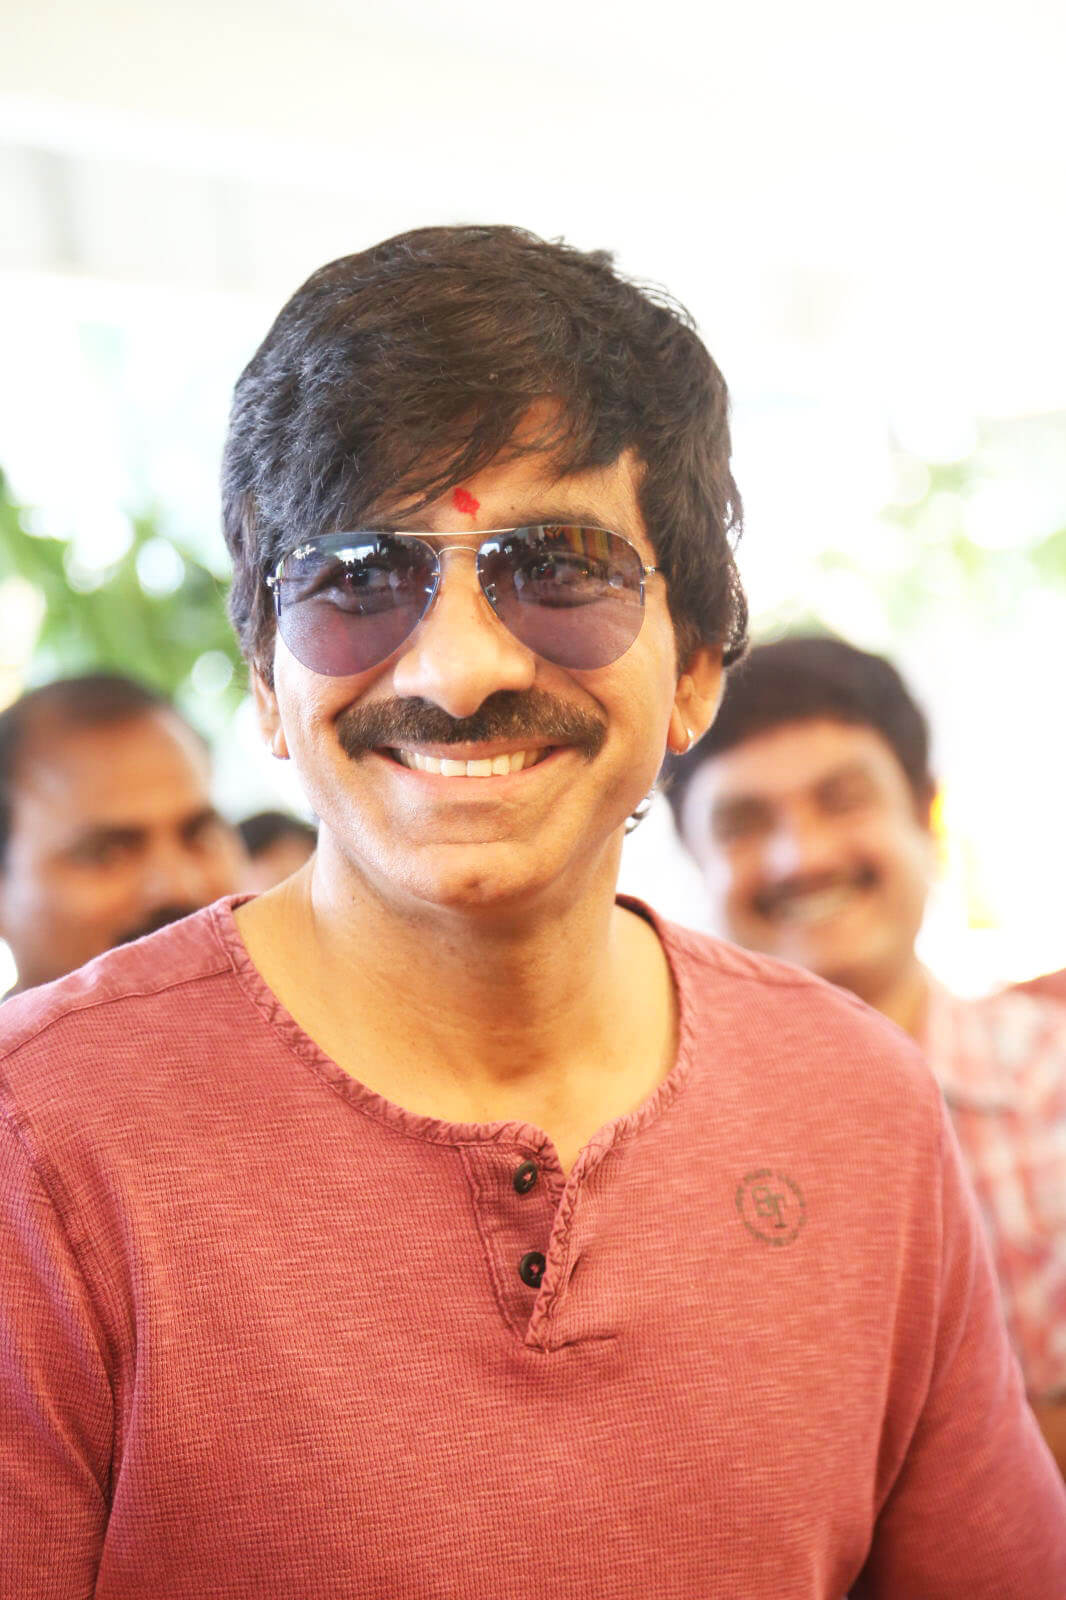 Ravi Teja Movie, Photos(images), Date Of Birth, Family, Brother, Height, Biography, Net Worth, Age, Wife, Details, Education, Instagram, Twitter, Wiki, Imdb, Facebook, Hairstyle, Youtube (36)